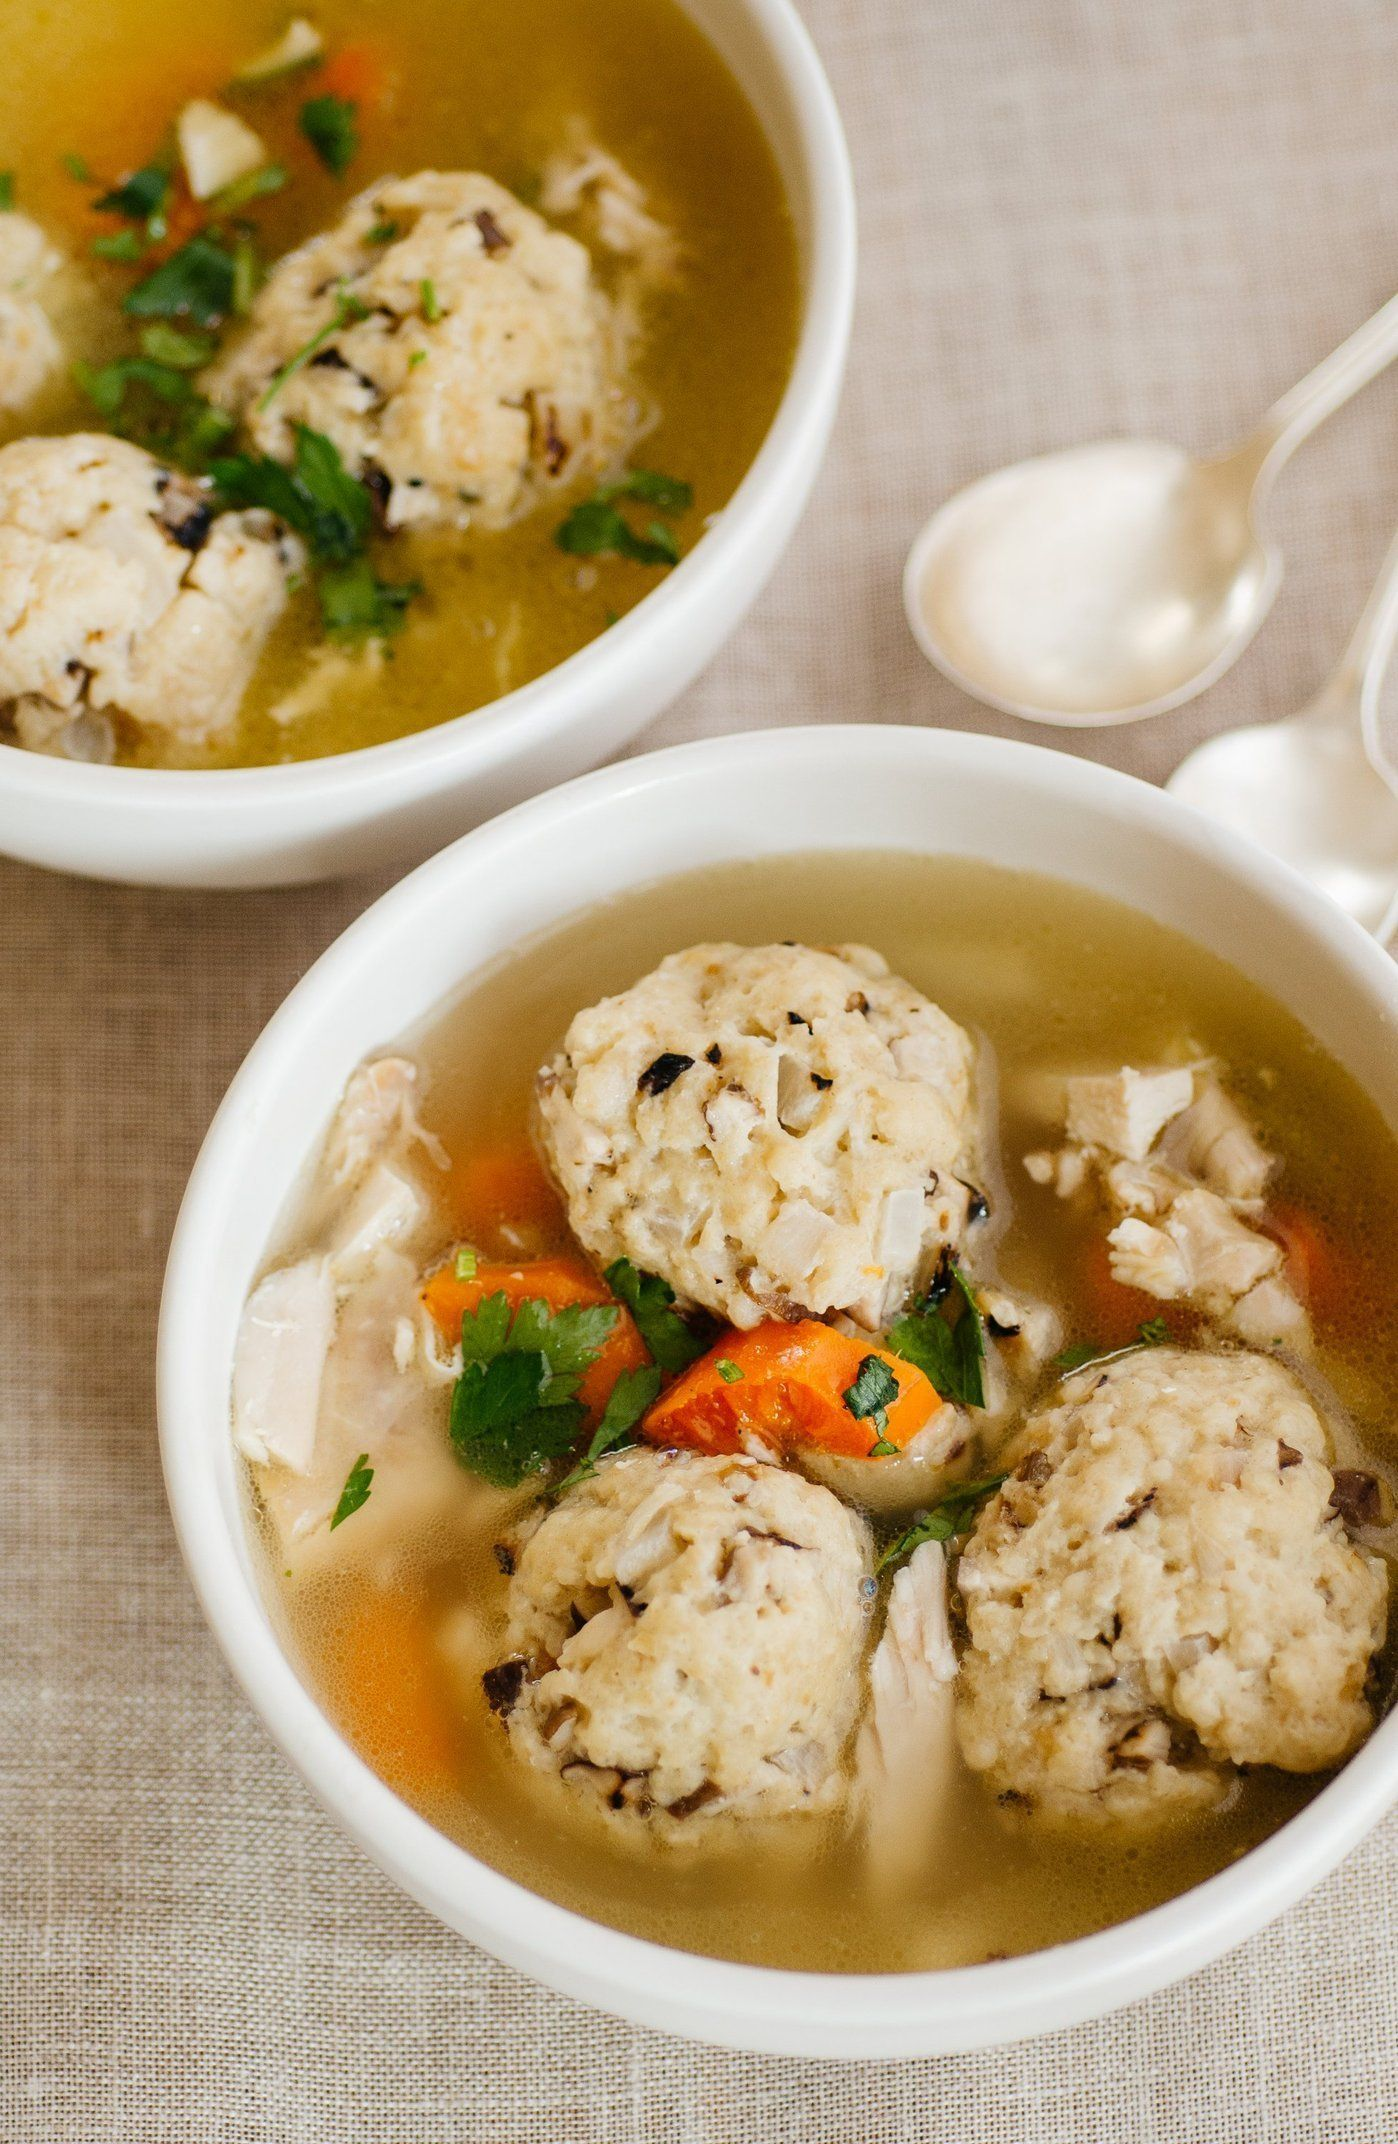 """I am all for getting creative in the kitchen, but sometimes, you just don't want to mess around with a classic. Take chicken soup. Whether you call it """"goldene yoich"""" (golden broth in Yiddish), """"Jewish Penicillin,"""" or just plain old soup, not much can top the basic, soul-satisfying combination of tender chicken, carrots, celery, and onions swimming in soothing broth.   But you can bring a touch (just a touch!) of something new to the classics, like with these savory, intensely delicious…"""